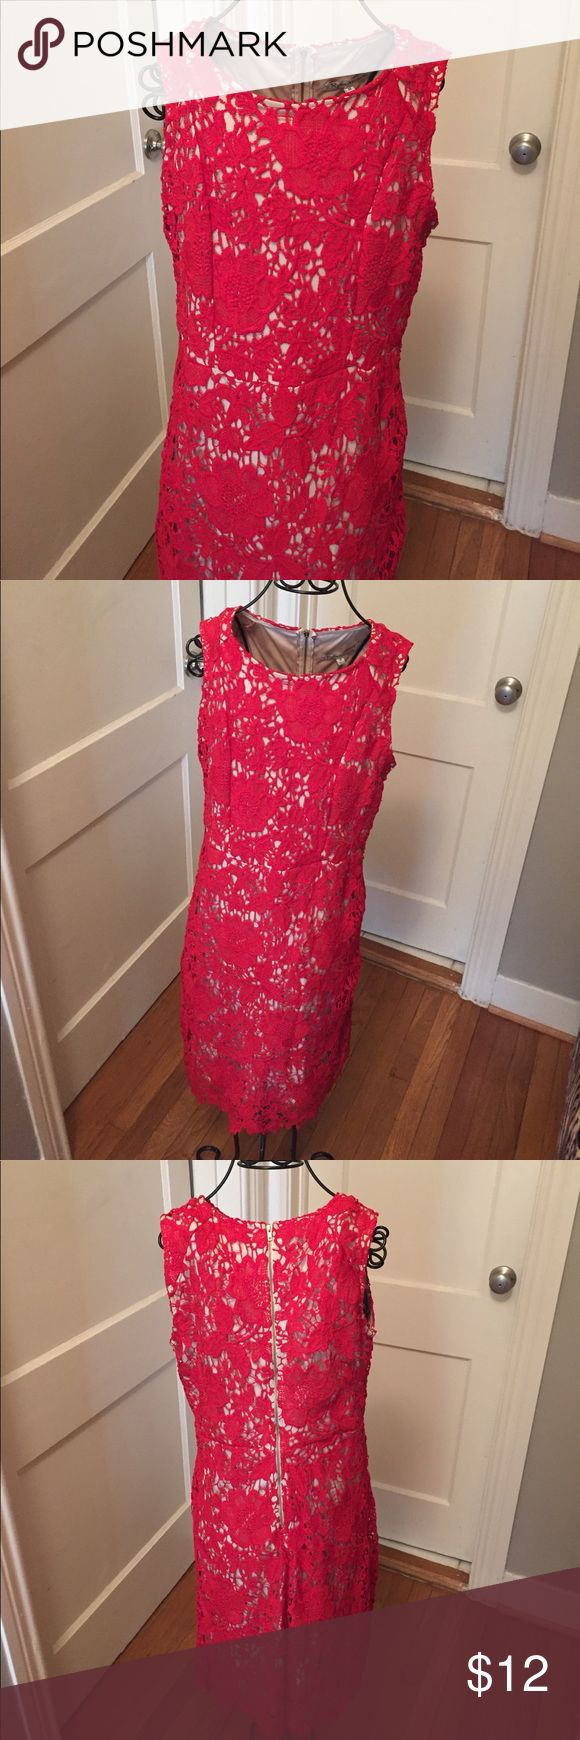 Red lace dress. Size M (fits 8) Red lace dress with beige lining under. Back gold zipper. Size M (fits an 8) Dresses Midi